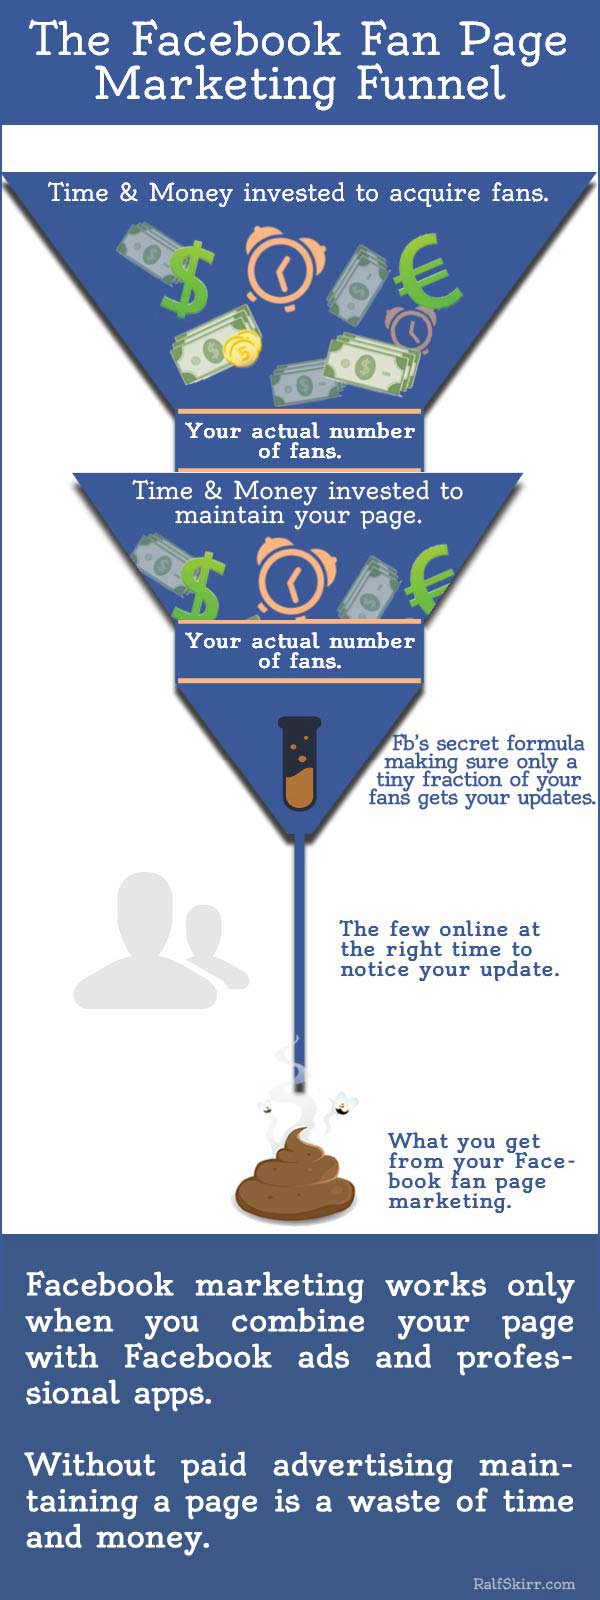 Infographic Facebook Fan Page Marketing